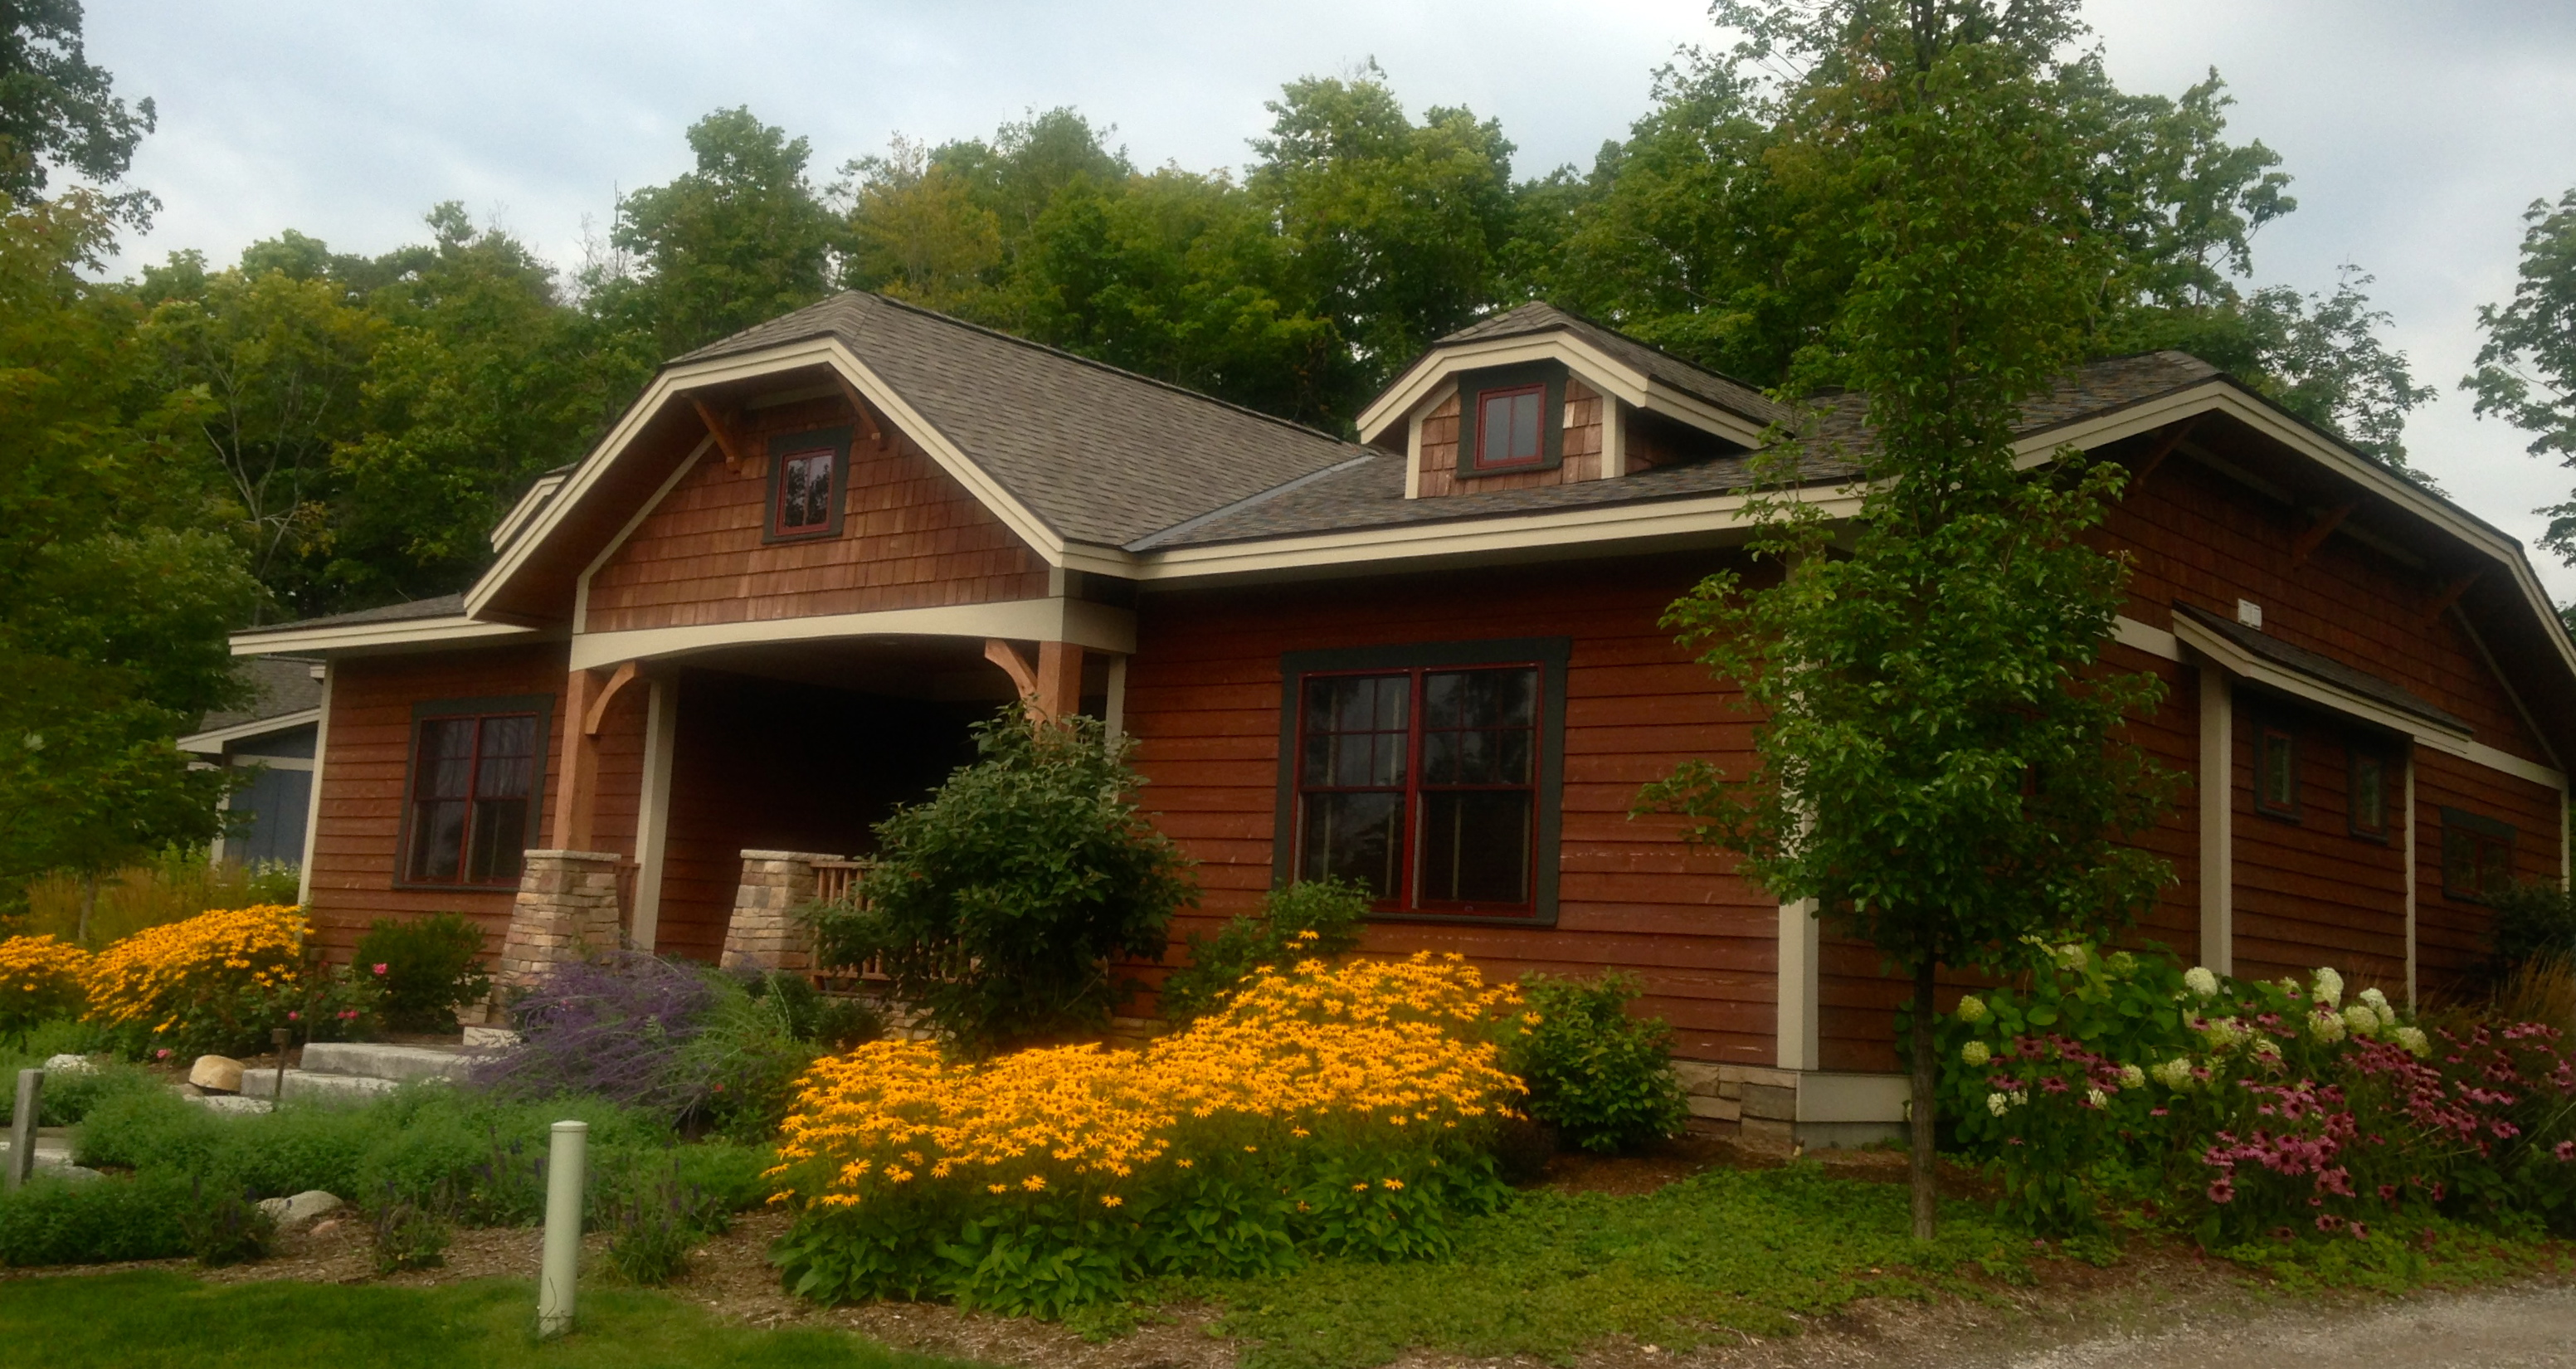 of cottages southwest img path michigan unit brooklyn fenner premier cottage builders bungalow inc b homes in